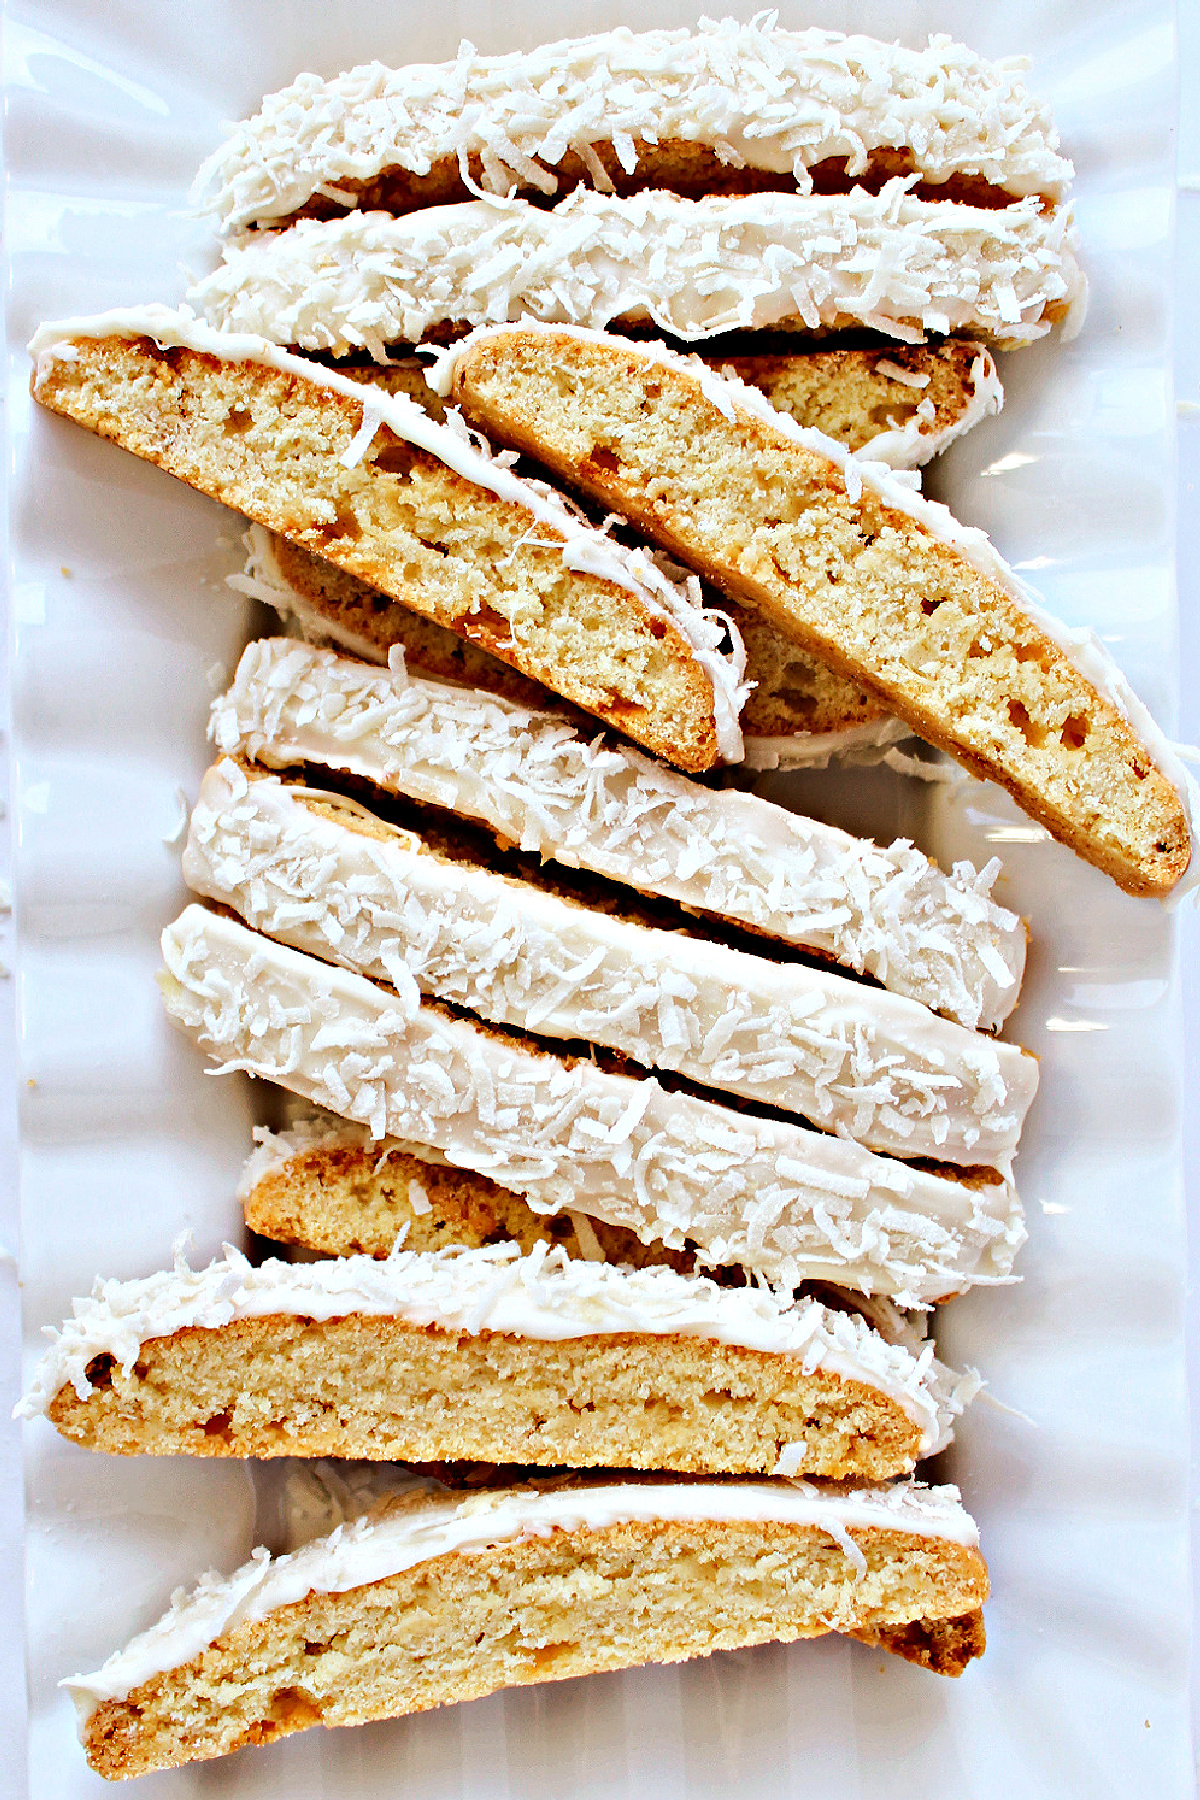 Sliced Coconut Biscotti topped with white chocolate and shredded coconut on a white platter.